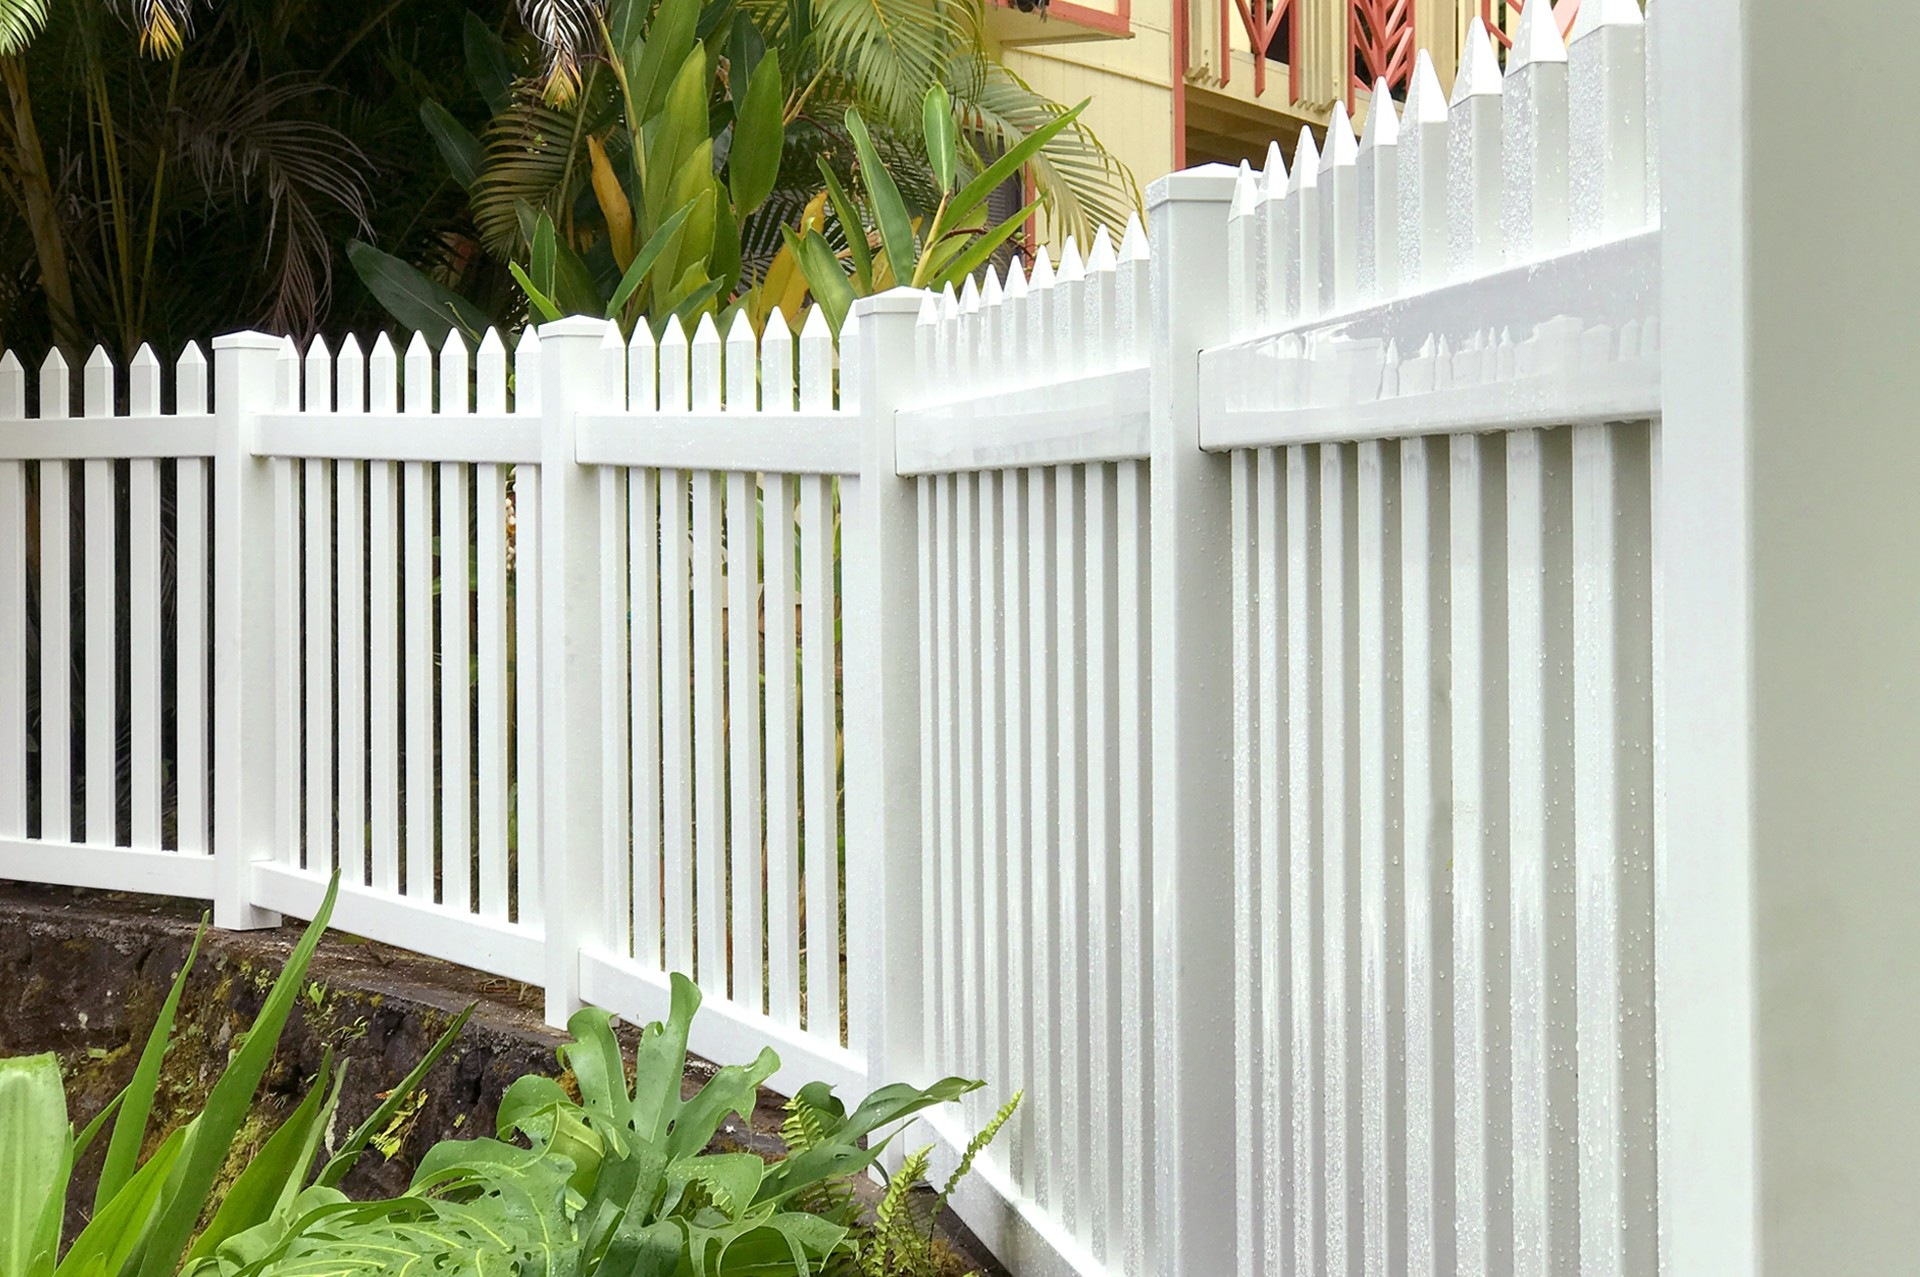 """Mike Fencing did an awesome job. Very professional, cleaned up well, and worked fast."""